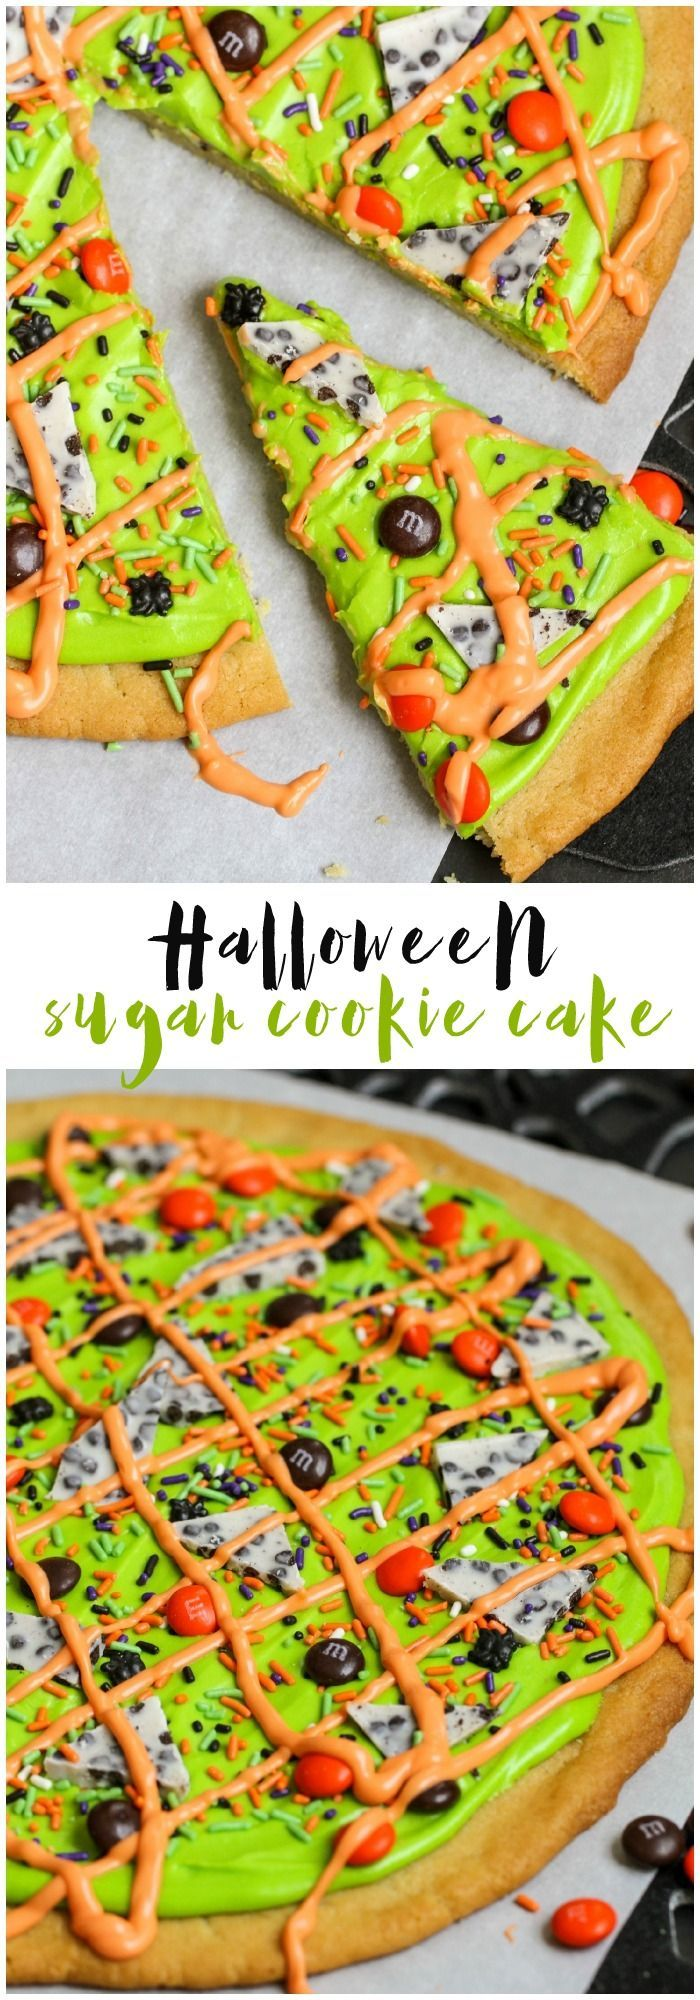 Simple and delicious Halloween Sugar Cookie Cake with a homemade cream cheese frosting. It's the perfect Halloween dessert!